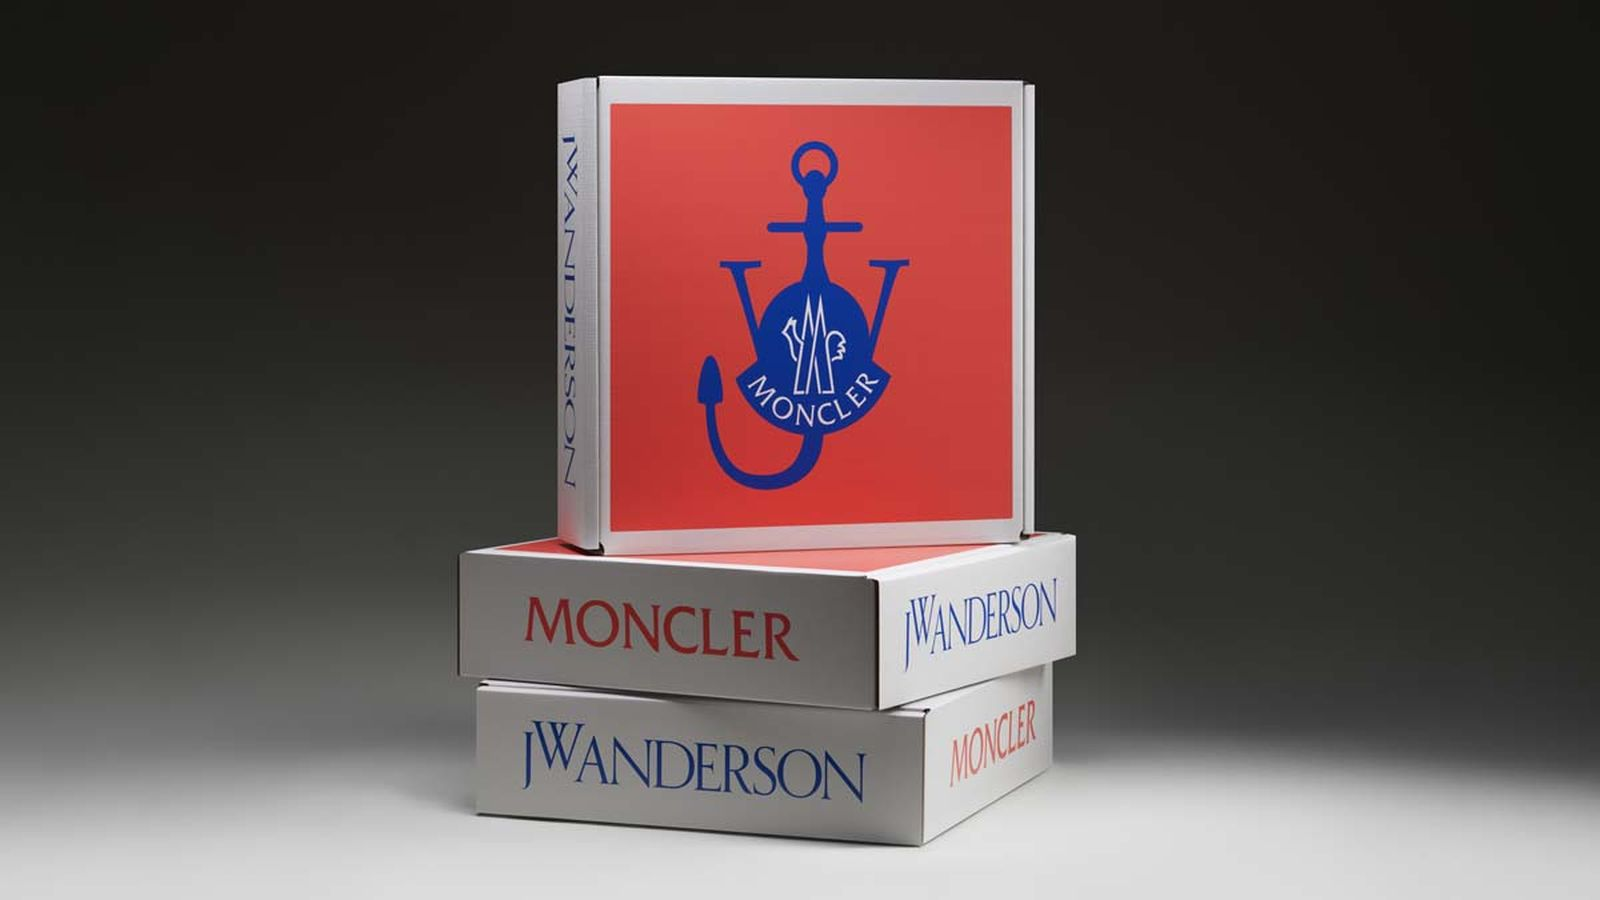 1 MONCLER JW ANDERSON_EXHIBITION IN A BOX_1